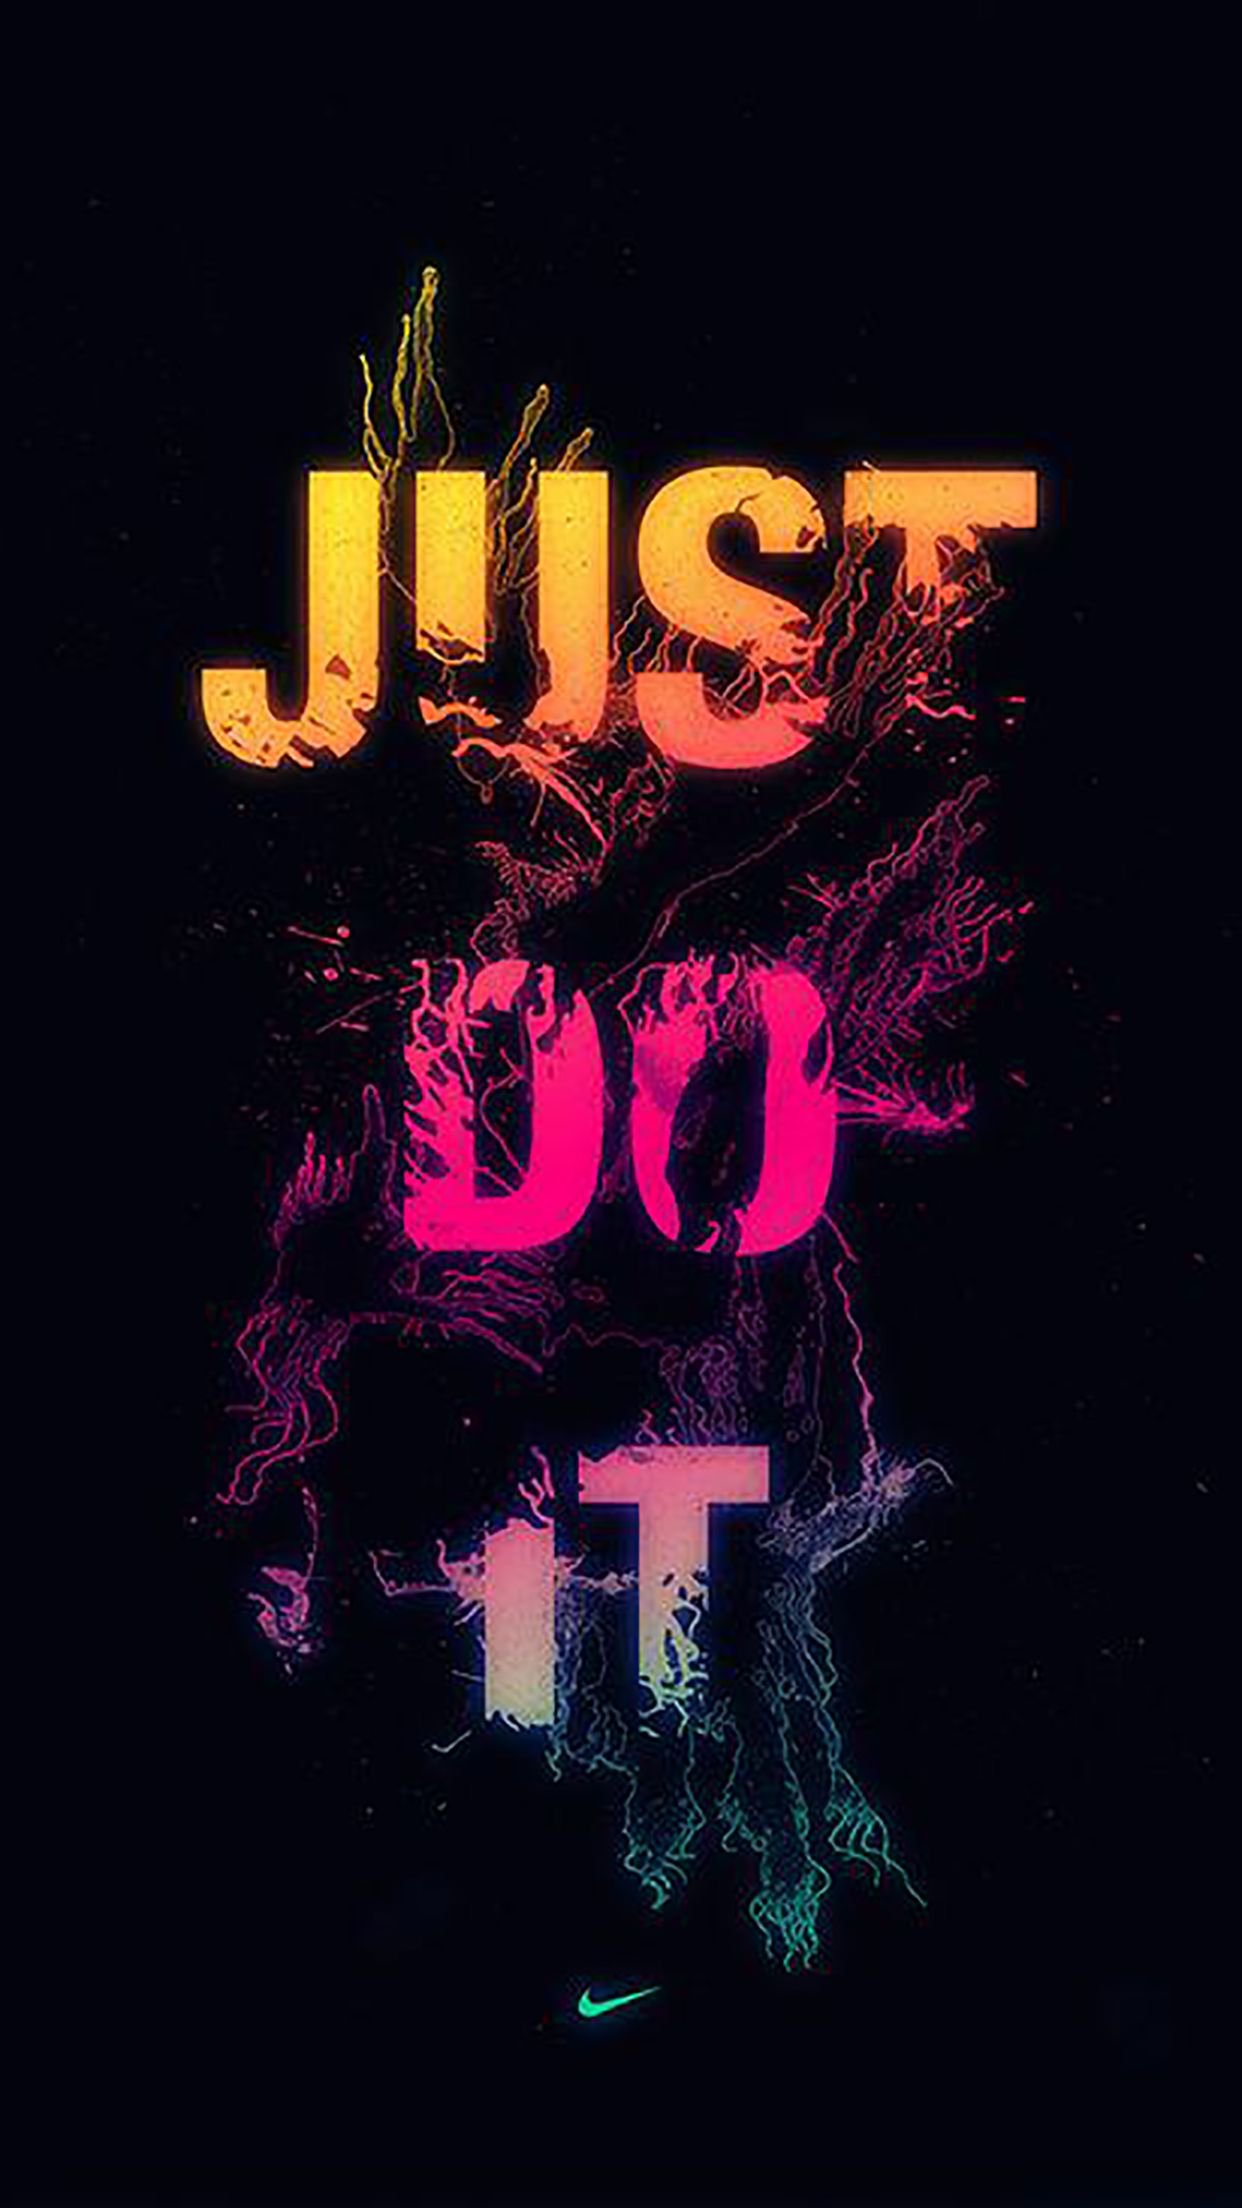 Nike Just Do It Wallpaper For Iphone Off 79 Www Gentlementours Hu